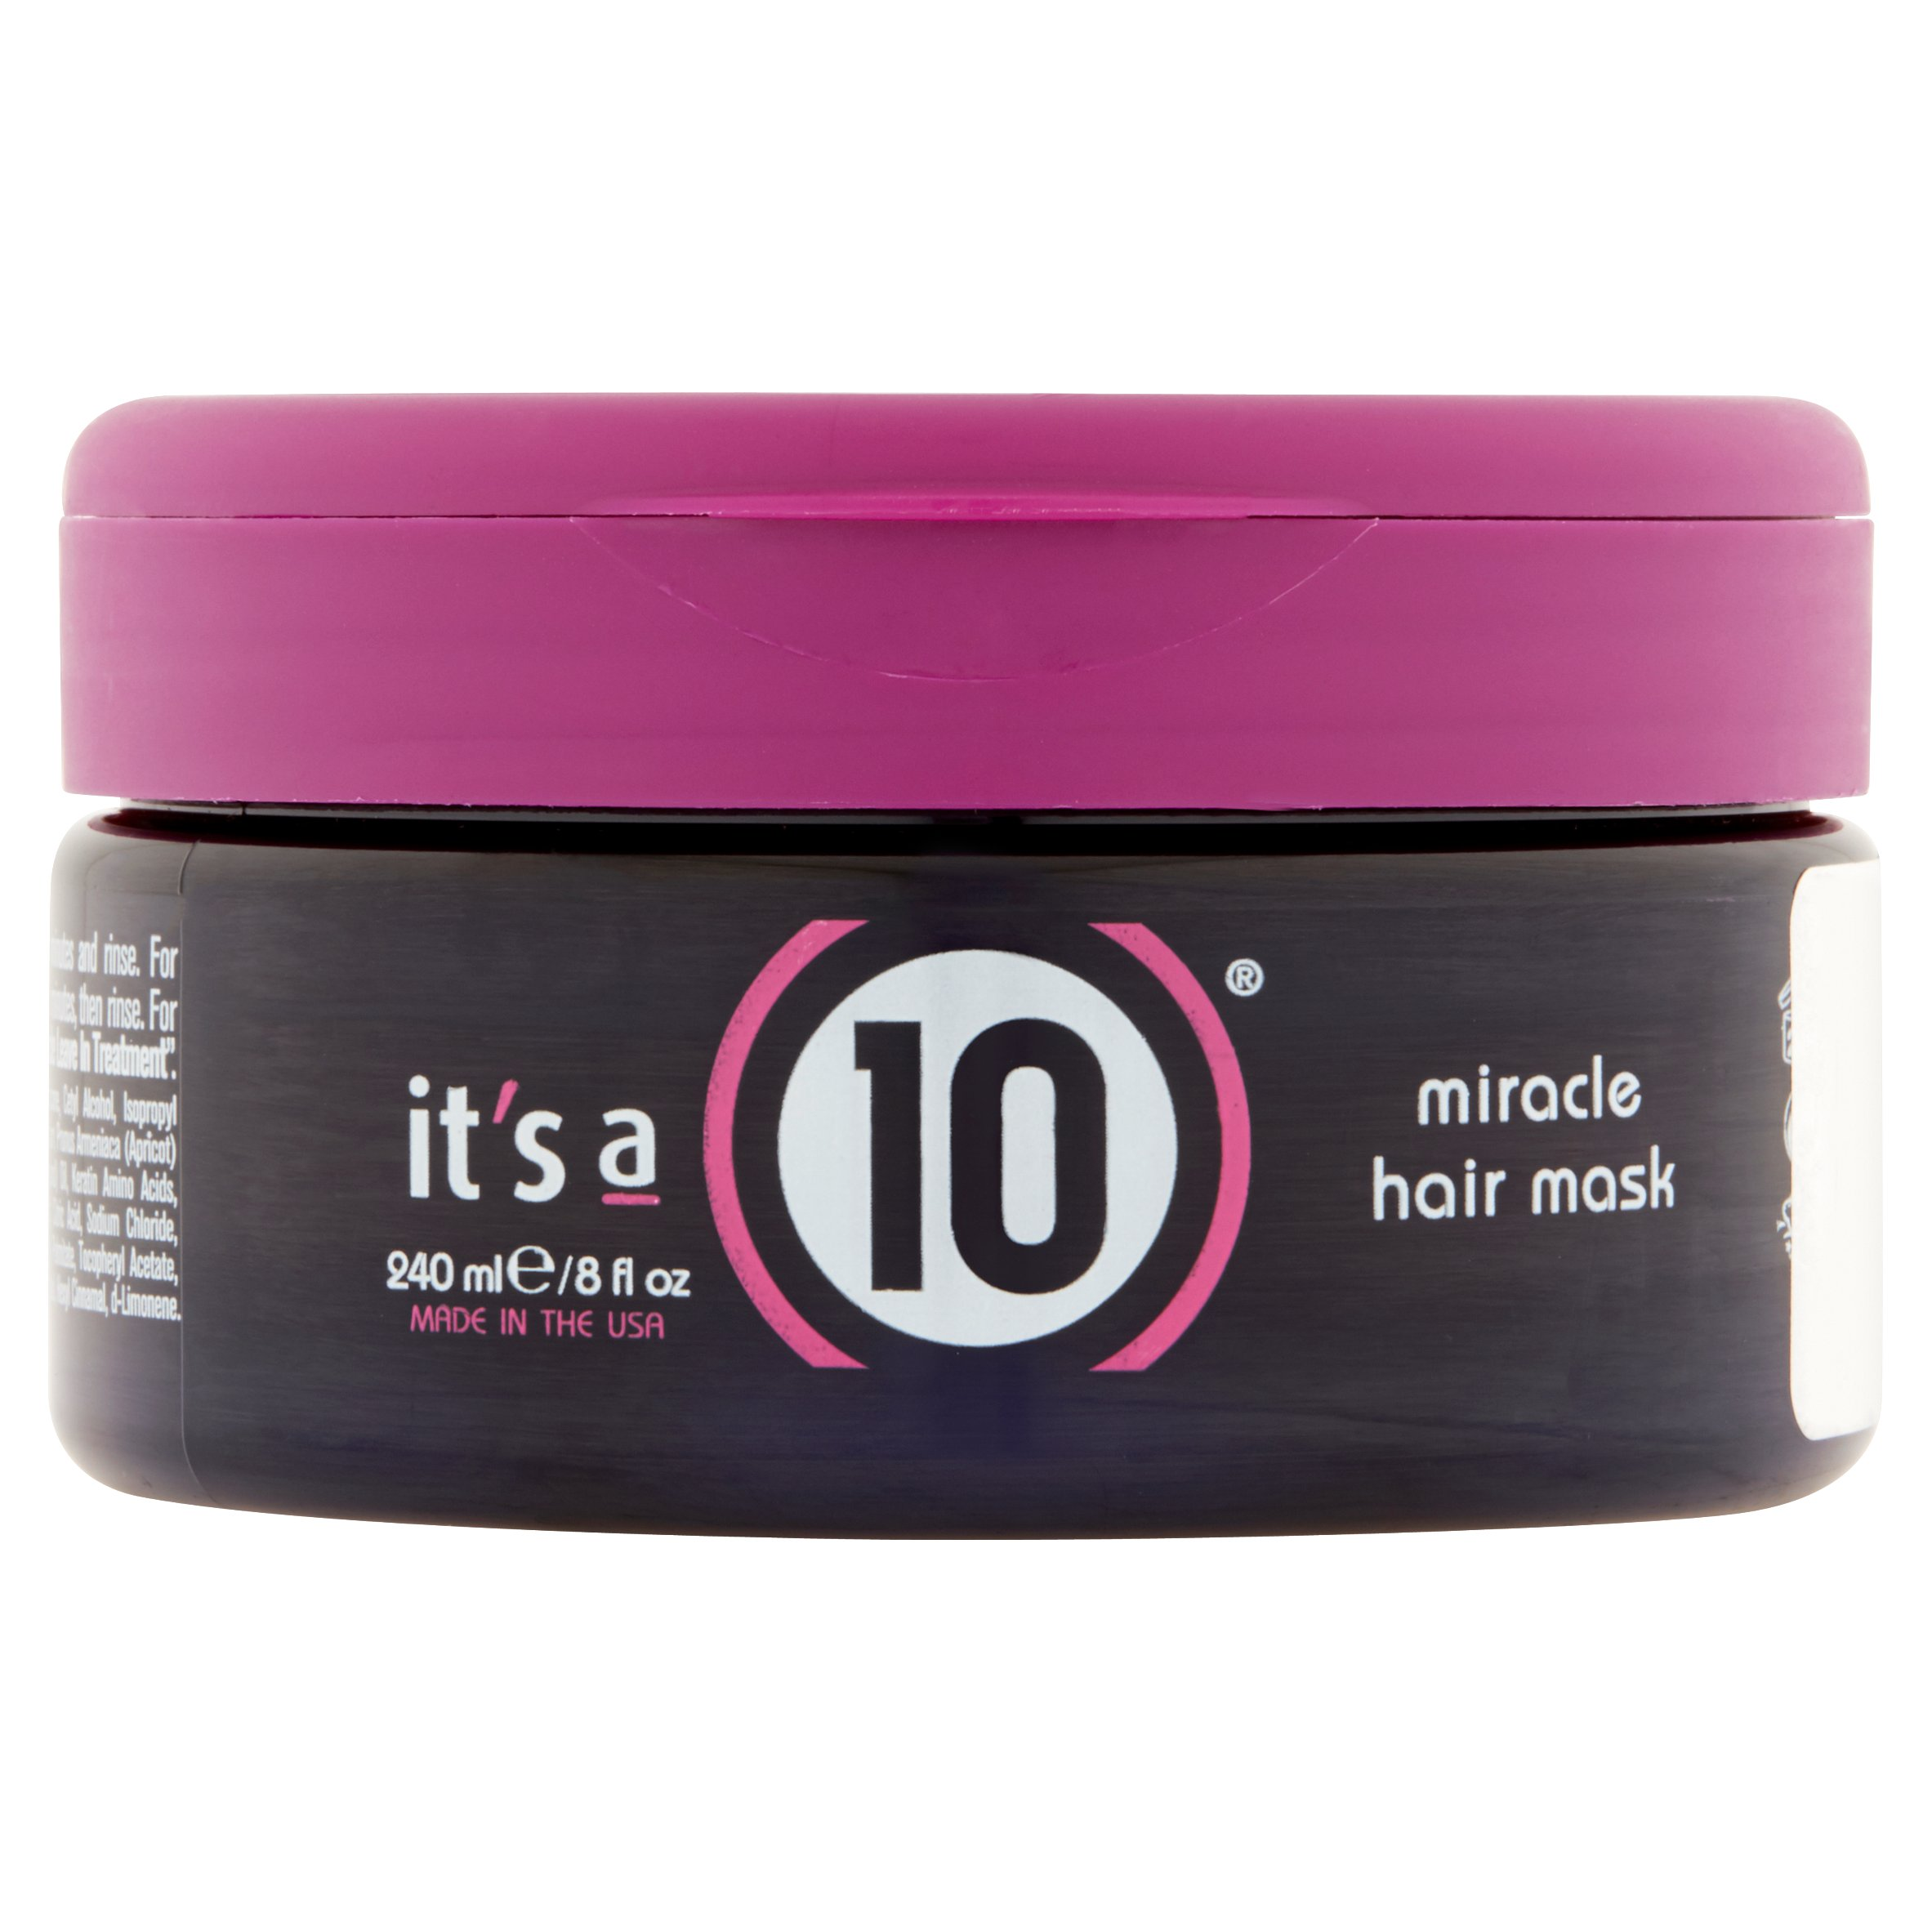 It's a 10 Miracle Hair Mask, 8 Fl Oz